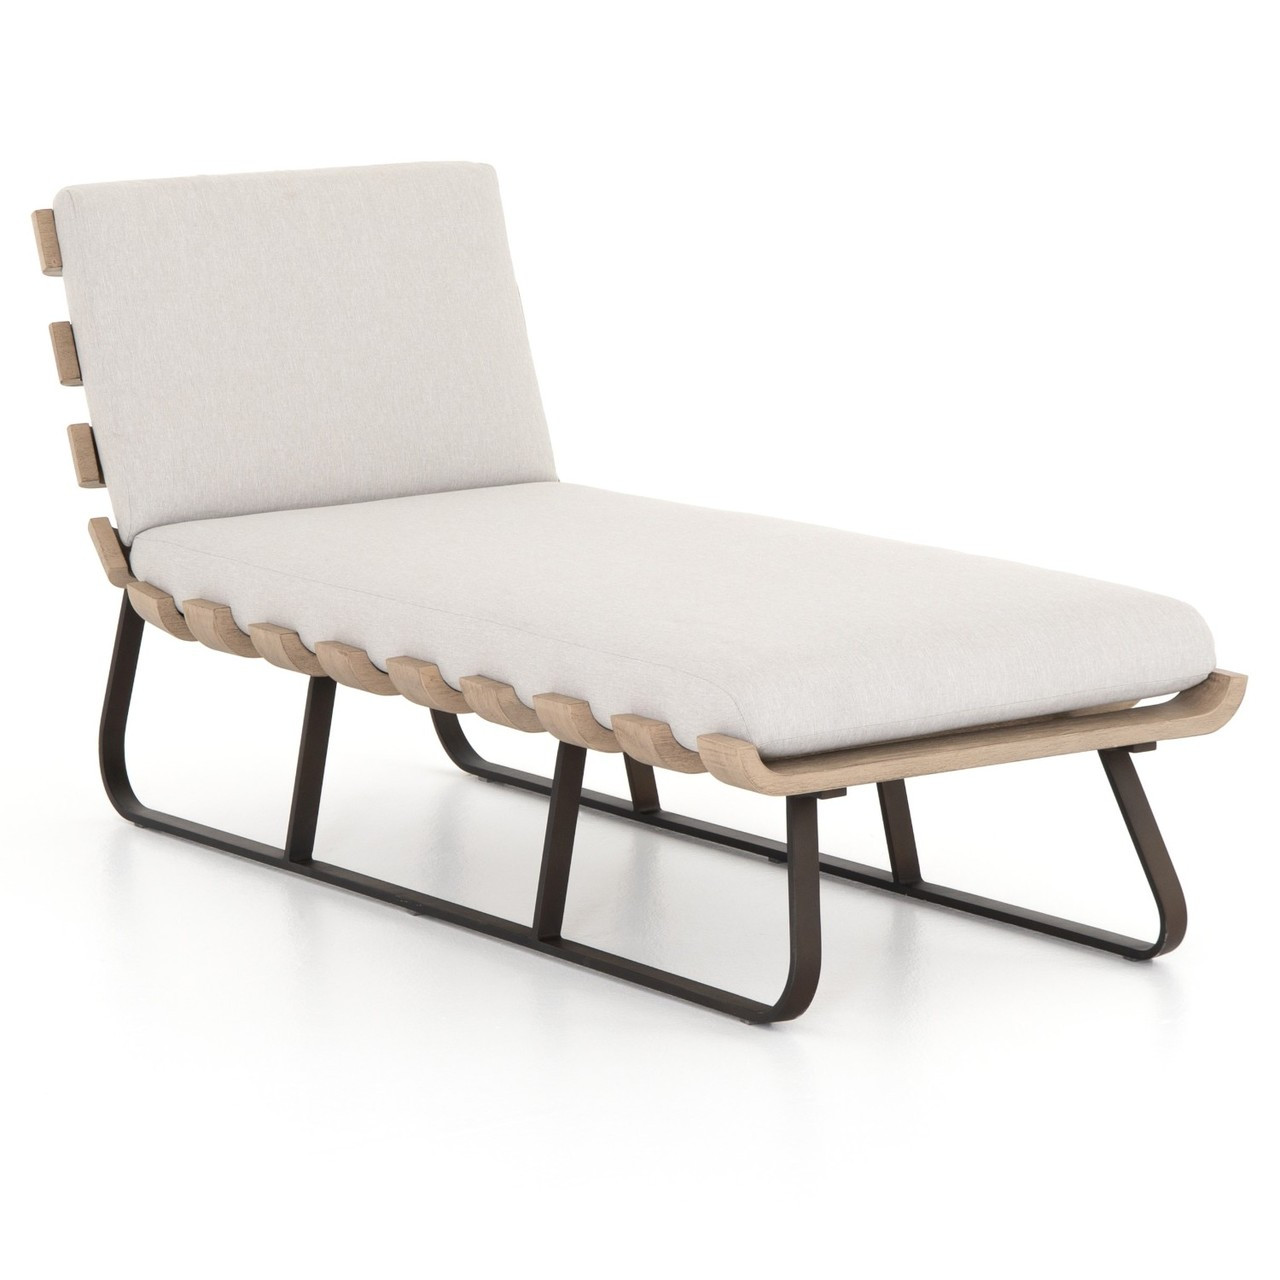 Dimitri Teak Wood Grey Outdoor Chaise Lounge Daybed Zin Home